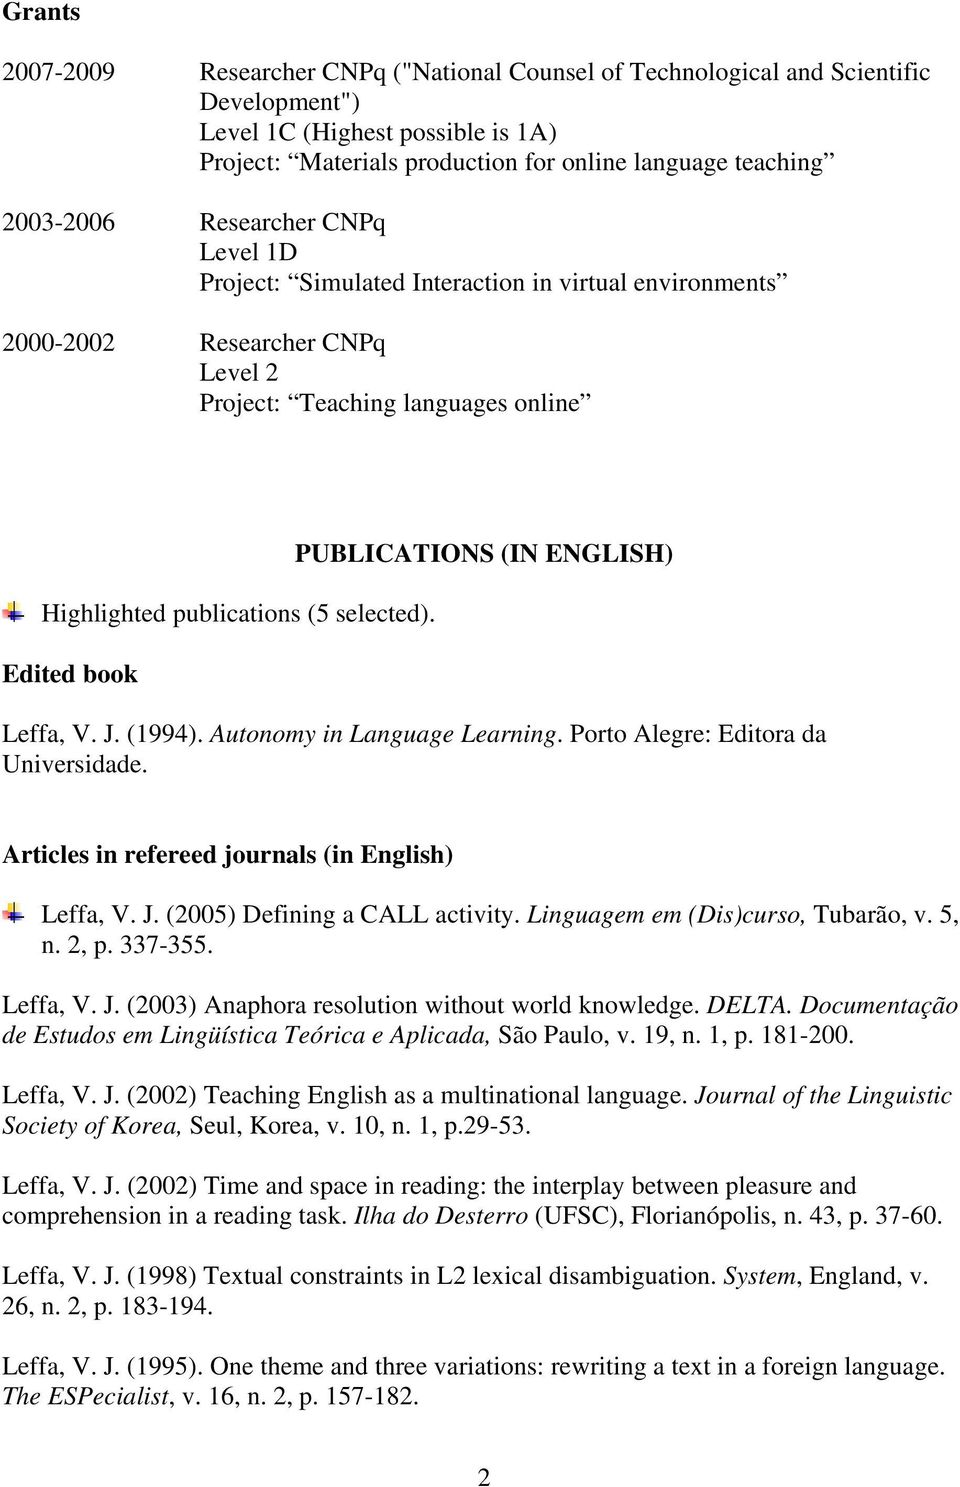 Edited book PUBLICATIONS (IN ENGLISH) Leffa, V. J. (1994). Autonomy in Language Learning. Porto Alegre: Editora da Universidade. Articles in refereed journals (in English) Leffa, V. J. (2005) Defining a CALL activity.